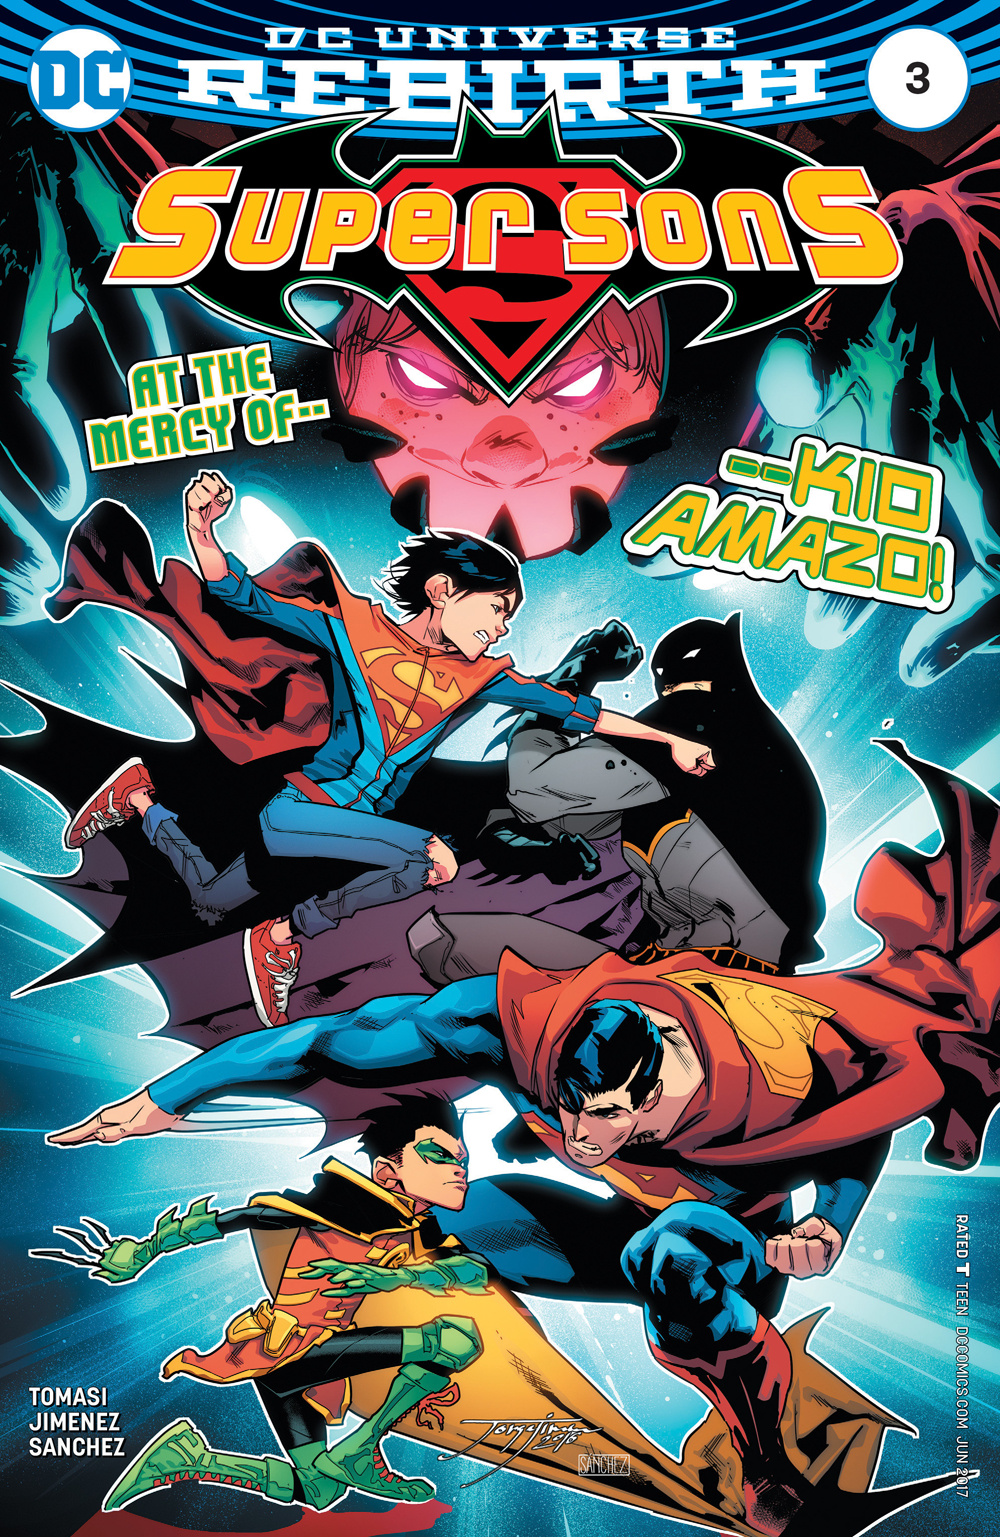 SUPER SONS #3